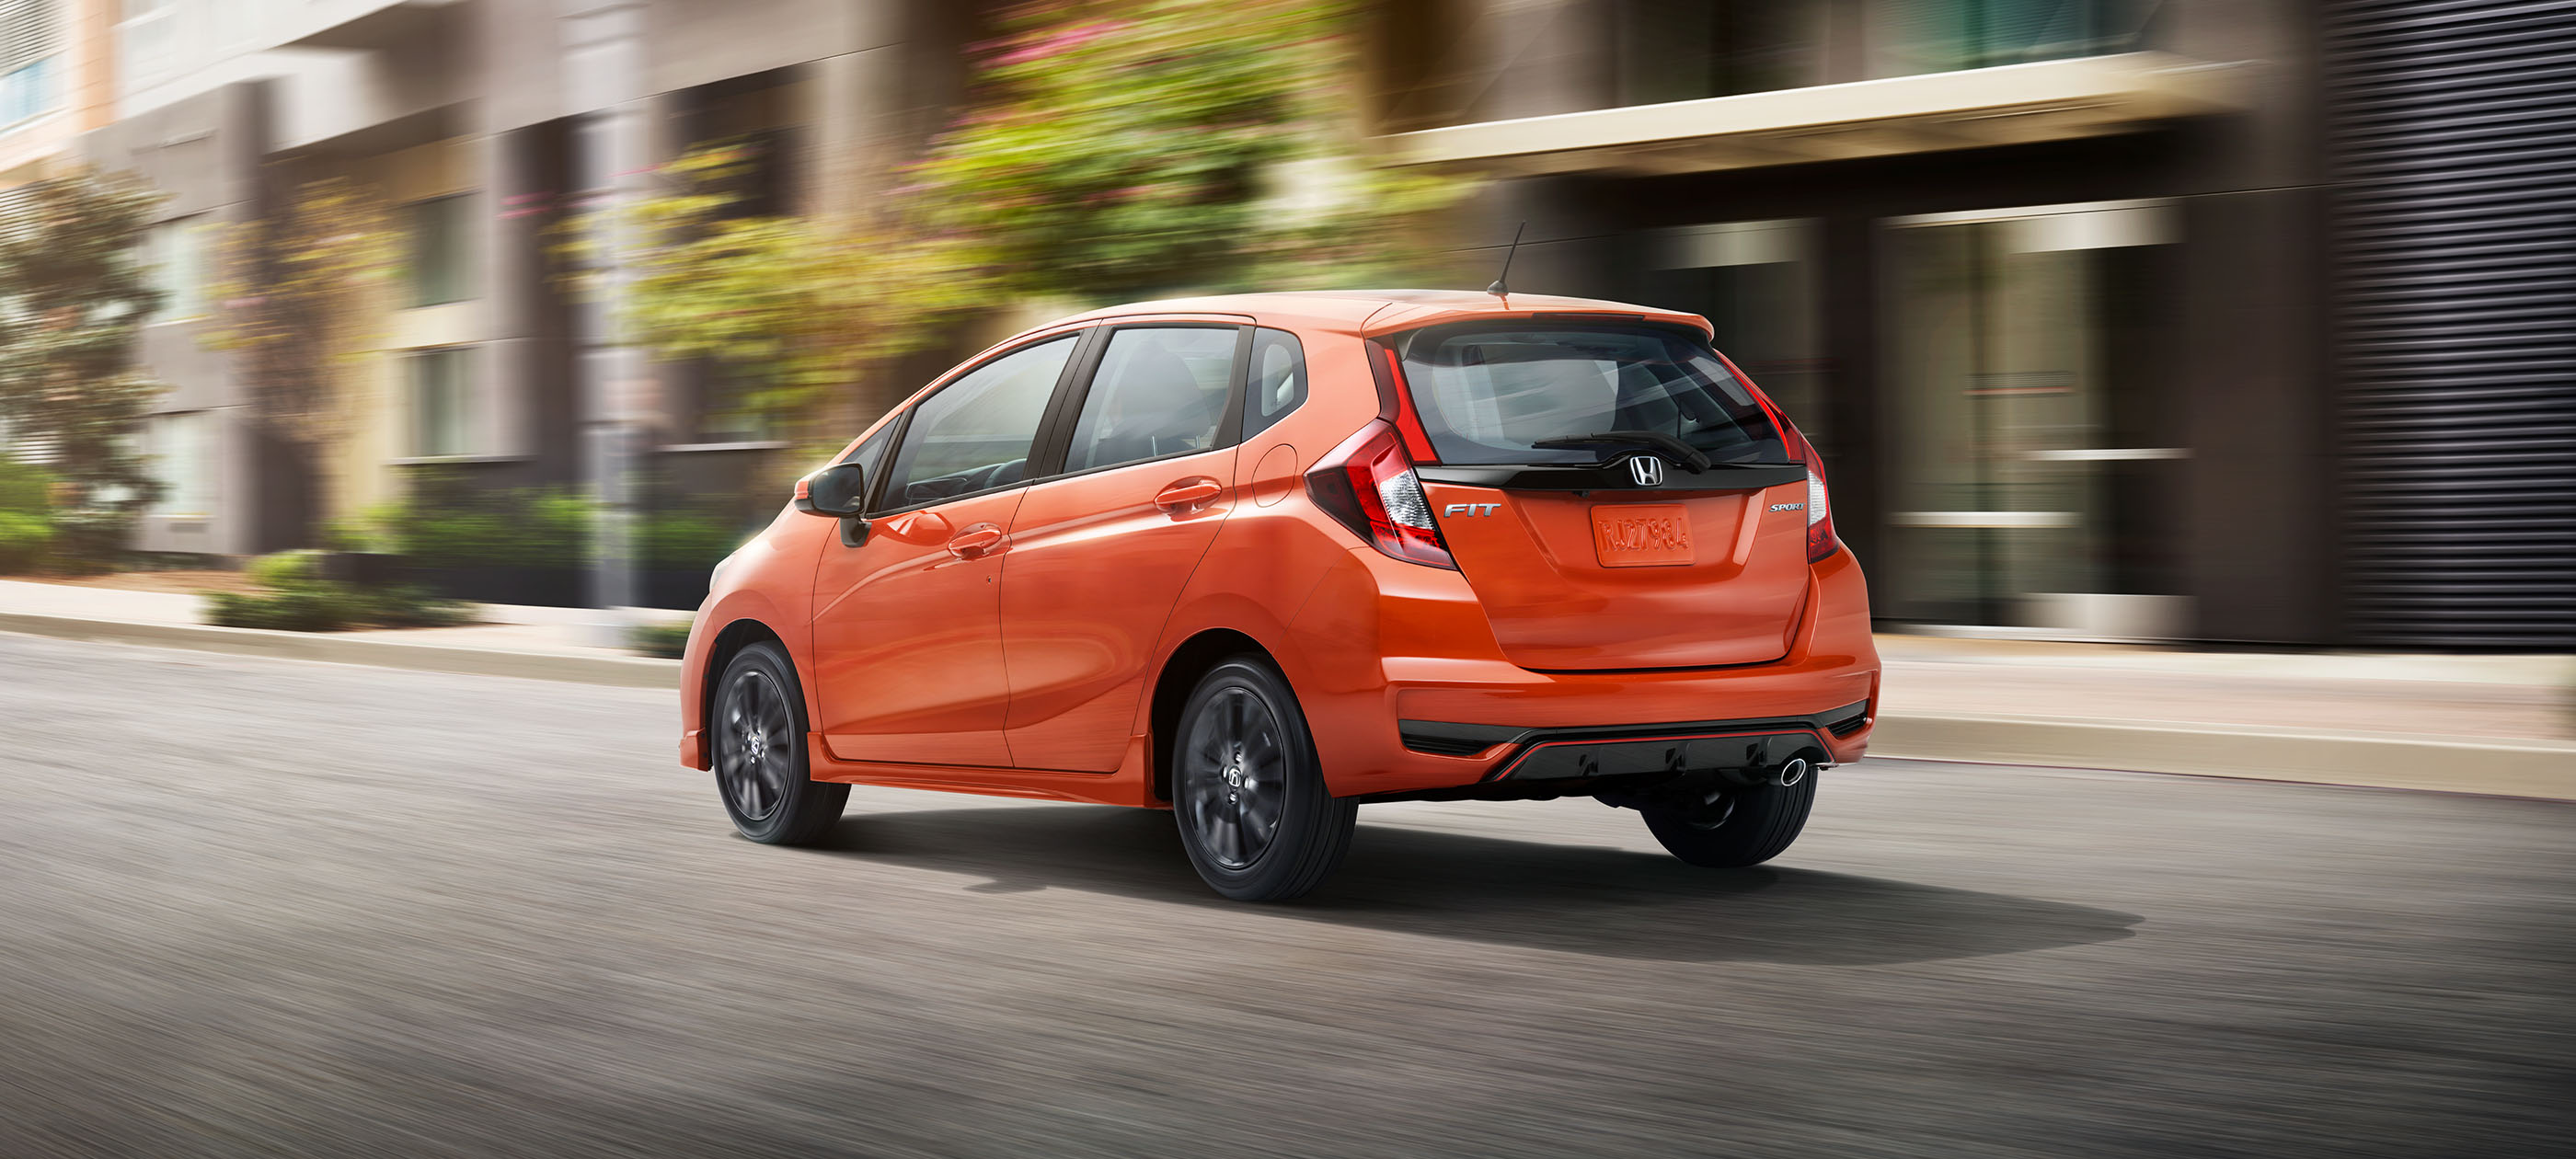 Rear ¾ driver-side view of 2019 Honda Fit Sport CVT in Orange Fury driving on city road.